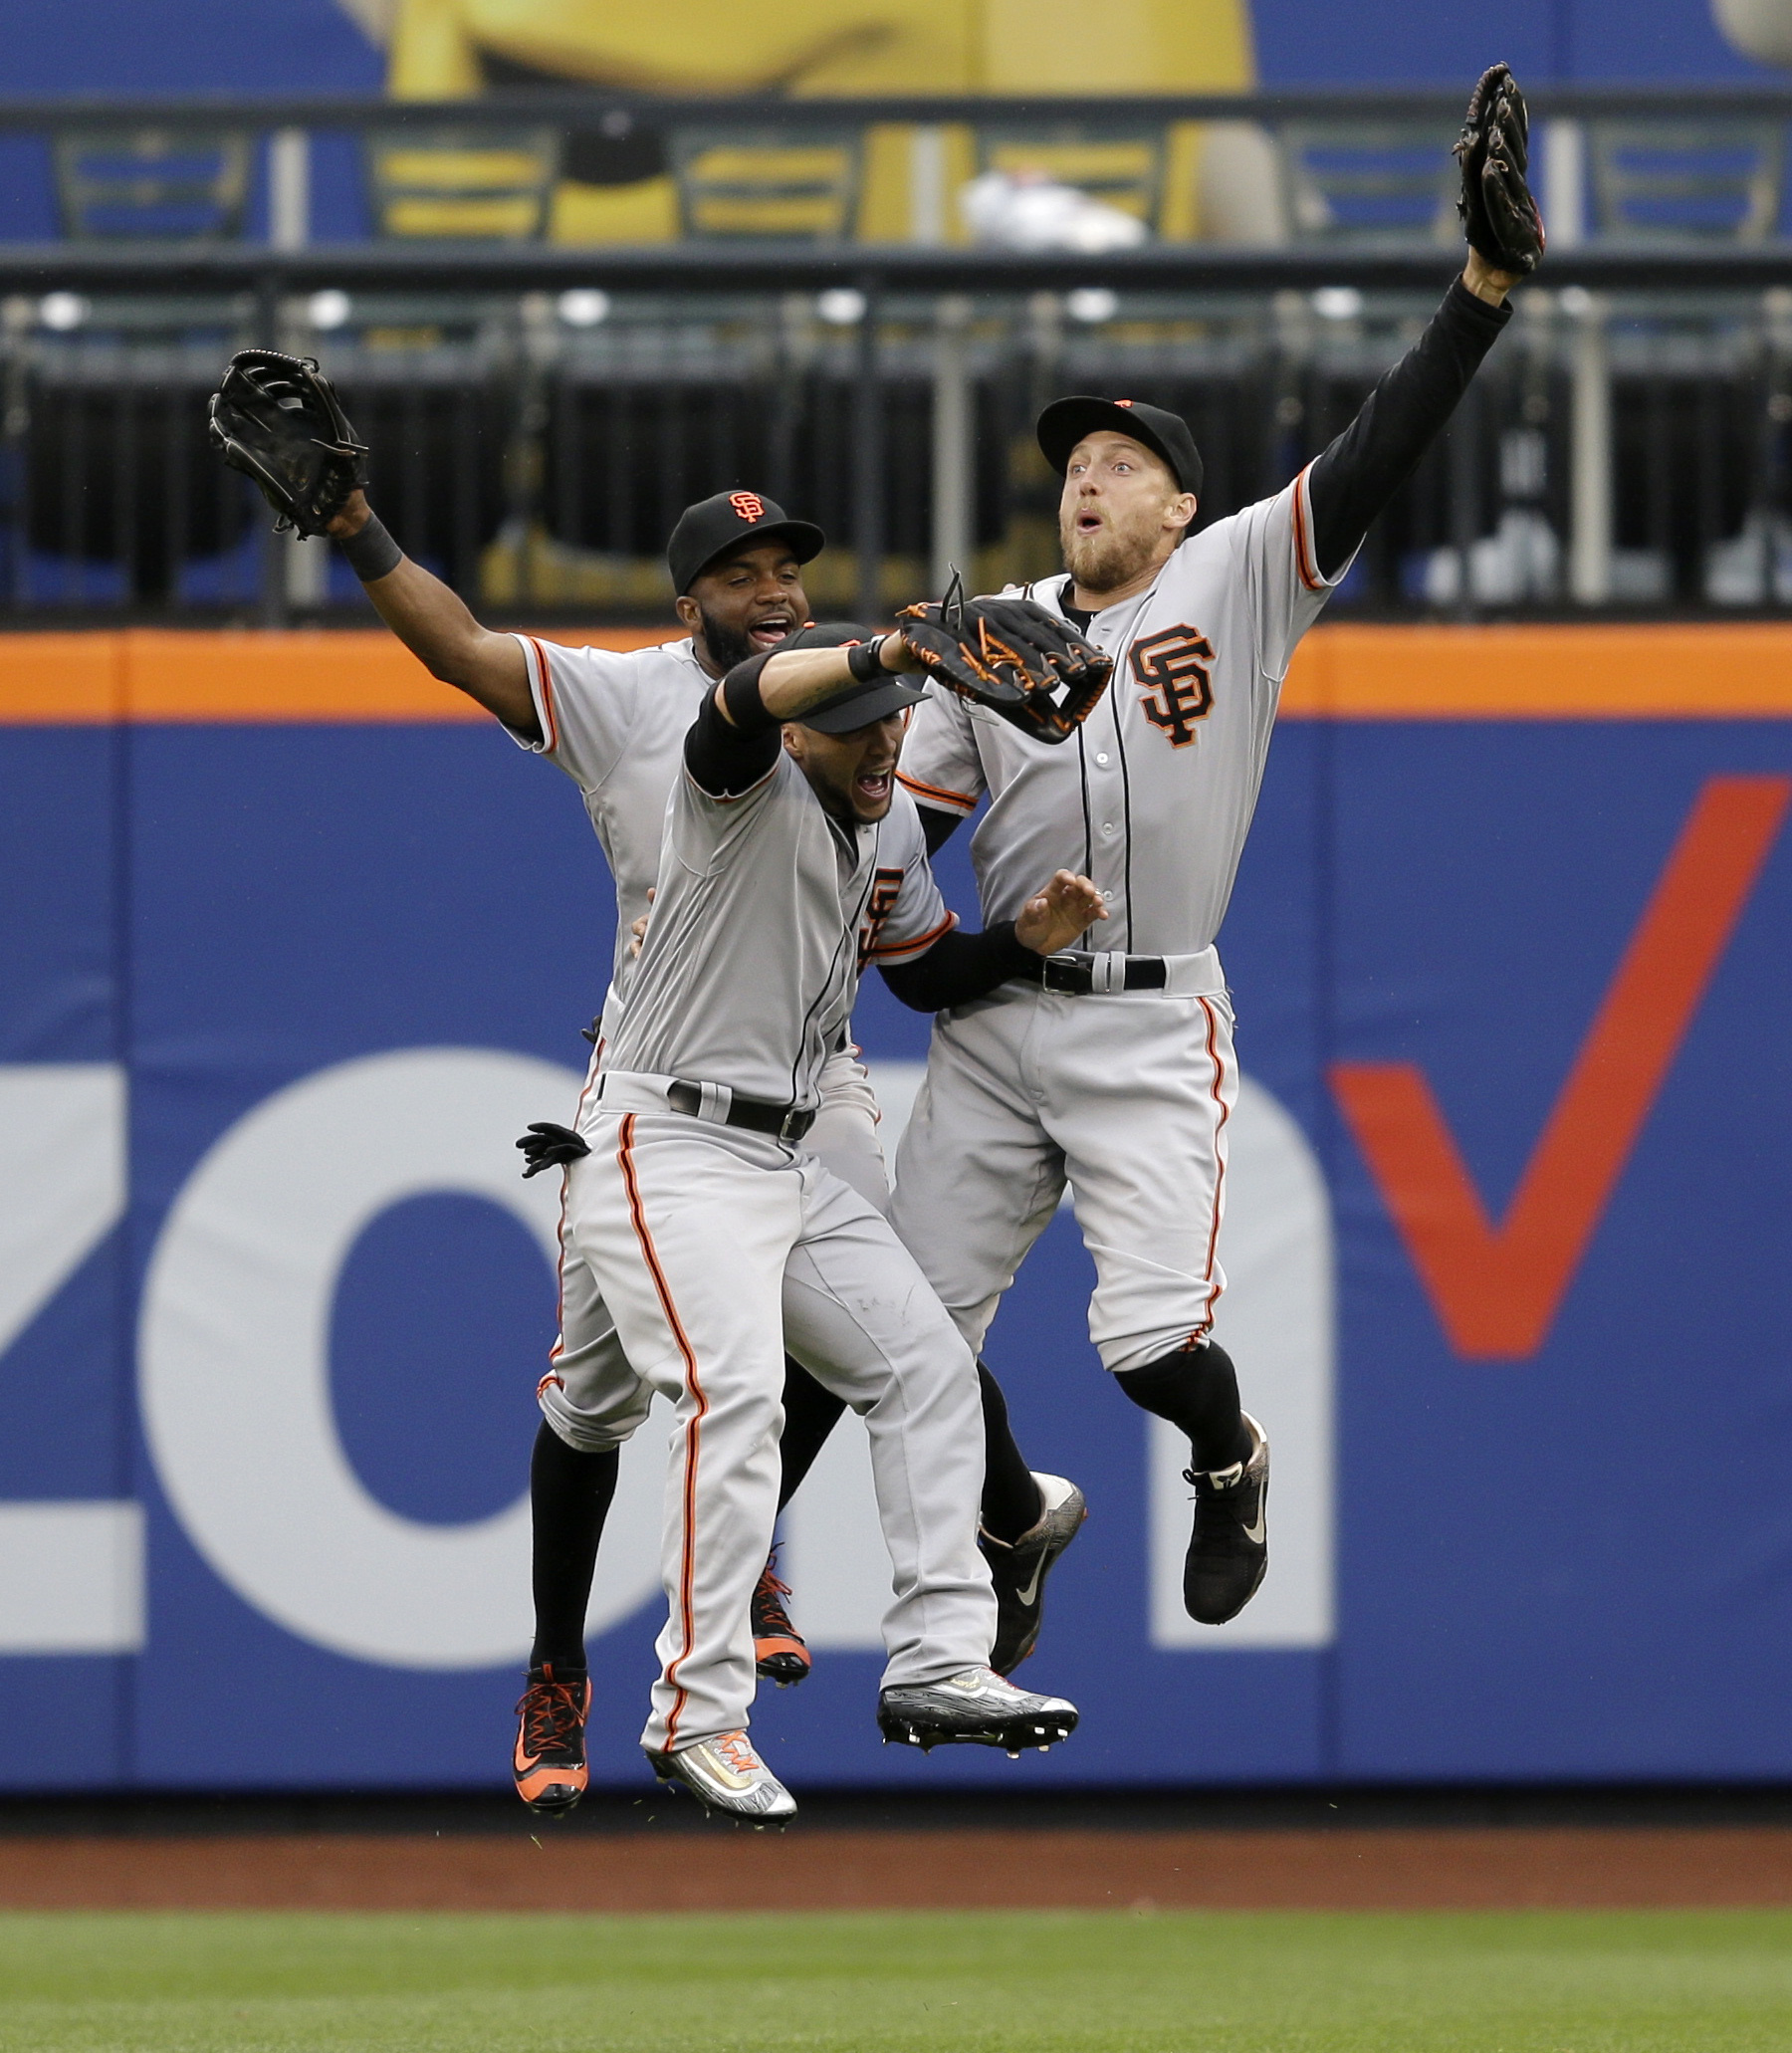 San Francisco Giants' outfielders Hunter Pence, right, Angel Pagan, center, and Denard Span celebrate after the baseball game against the New York Mets at Citi Field, Sunday, May 1, 2016 in New York. The Giants defeated the Mets 6-1. (AP Photo/Seth Wenig)